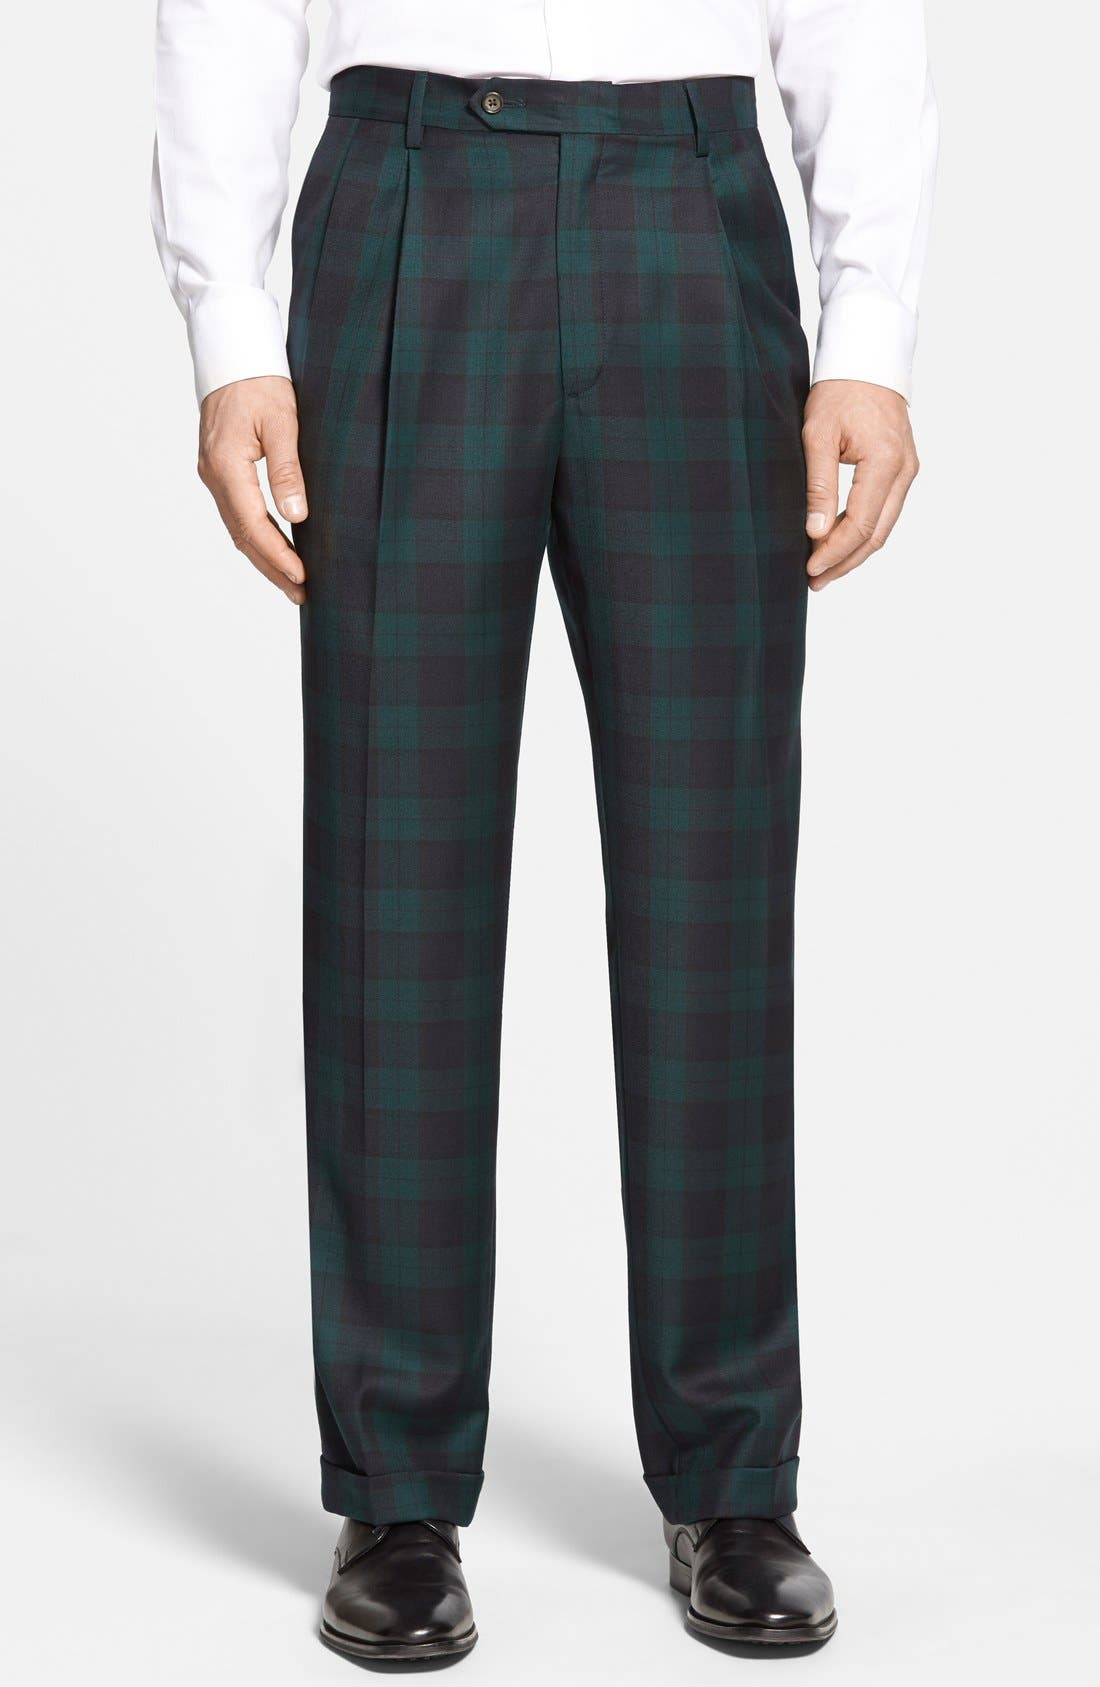 1950s Men's Clothing Mens Berle Pleated Plaid Wool Trousers Size 42 x 32 - Green $175.00 AT vintagedancer.com